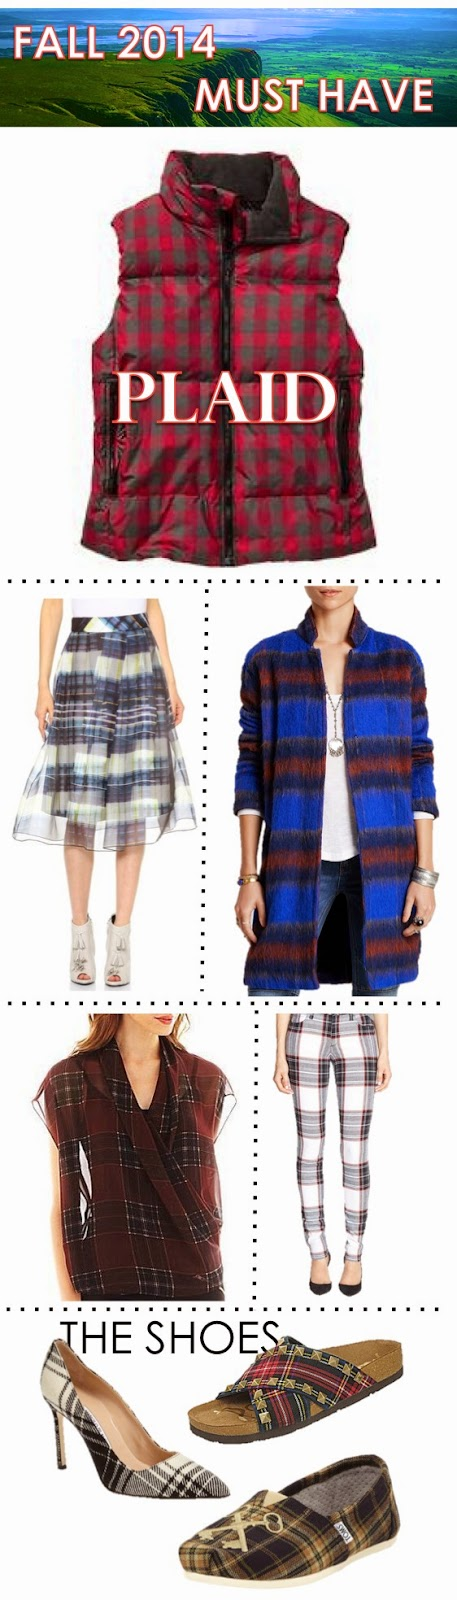 Fall Fashion 2014 Must Have: PLAID on thewellset.com